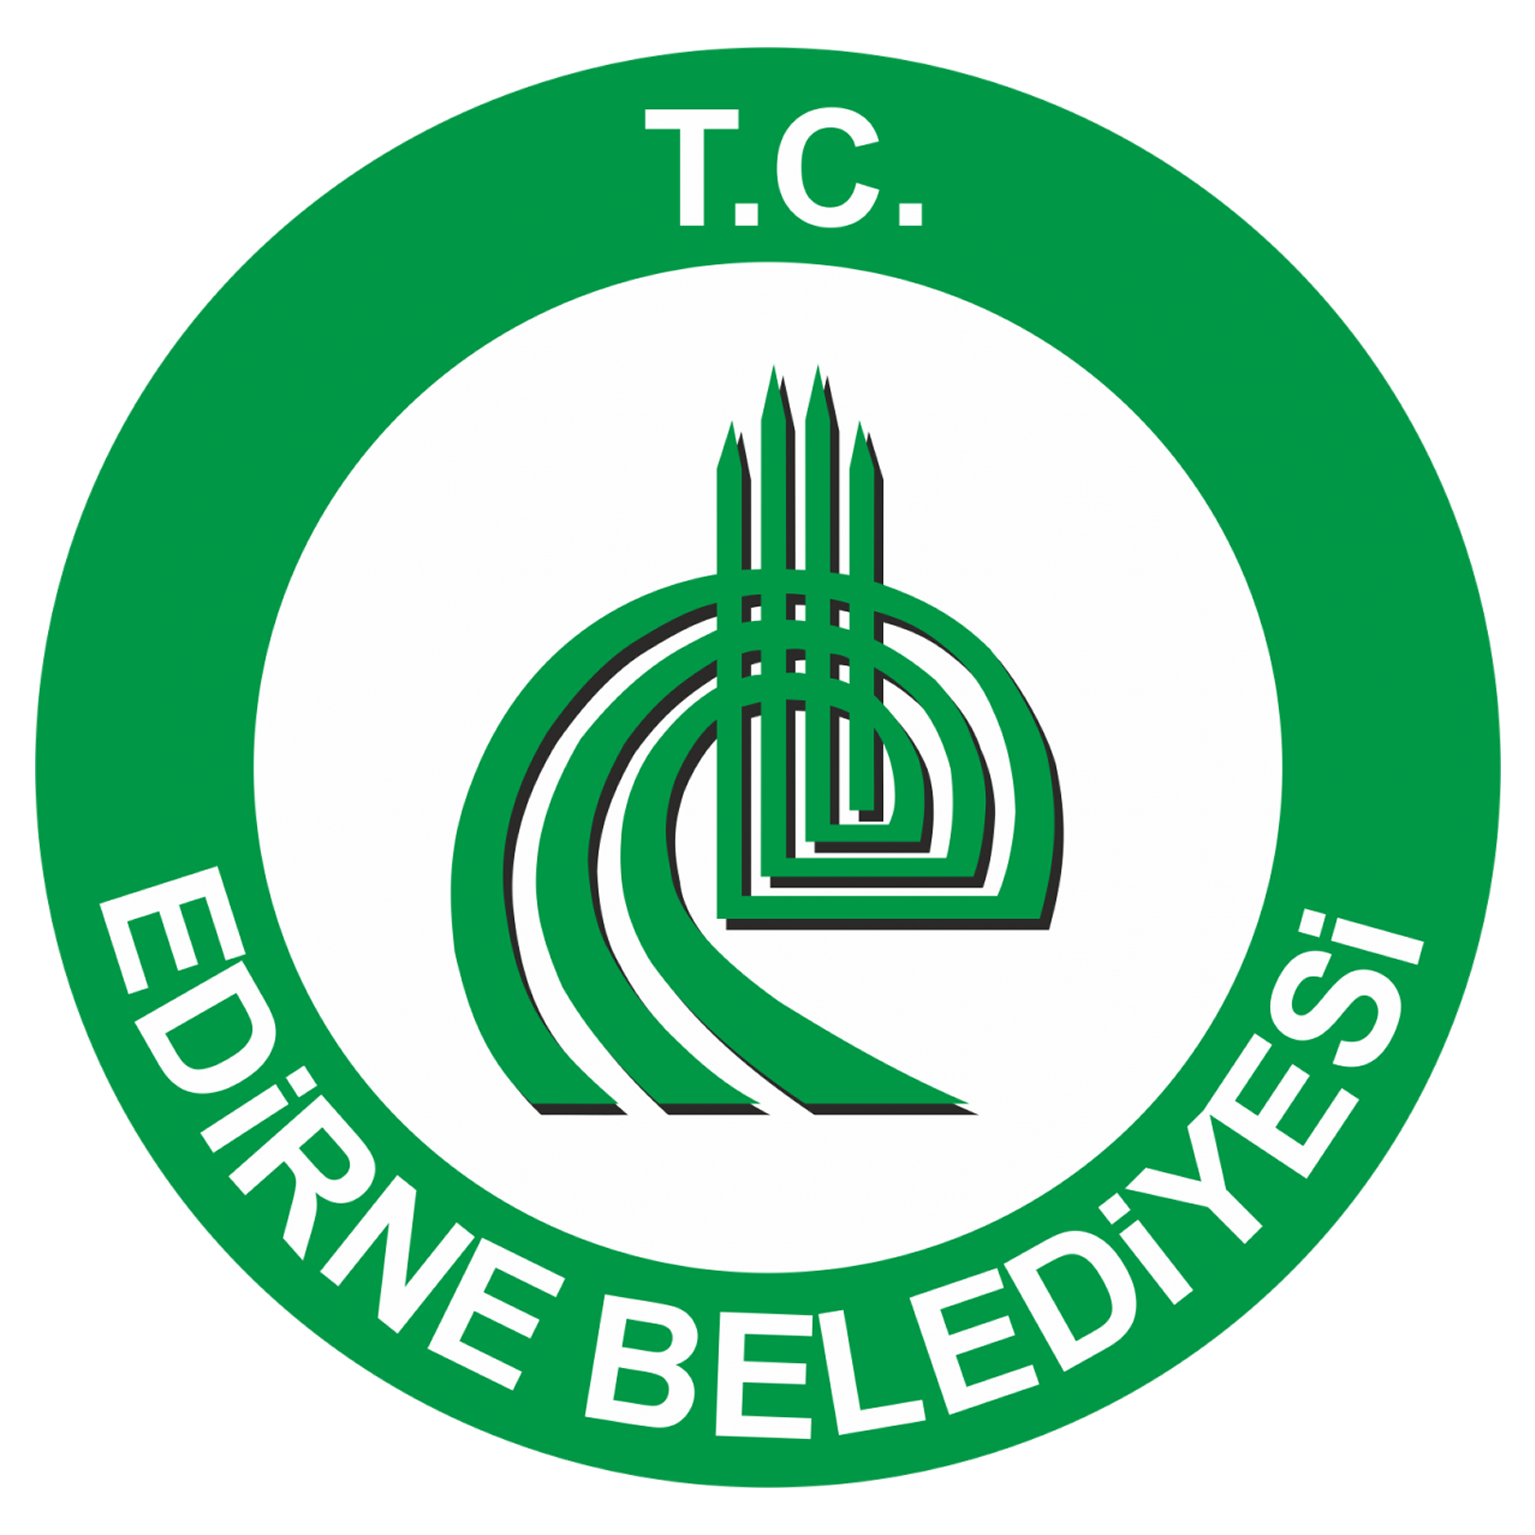 T.C. Edirne Belediye Başkanlığı